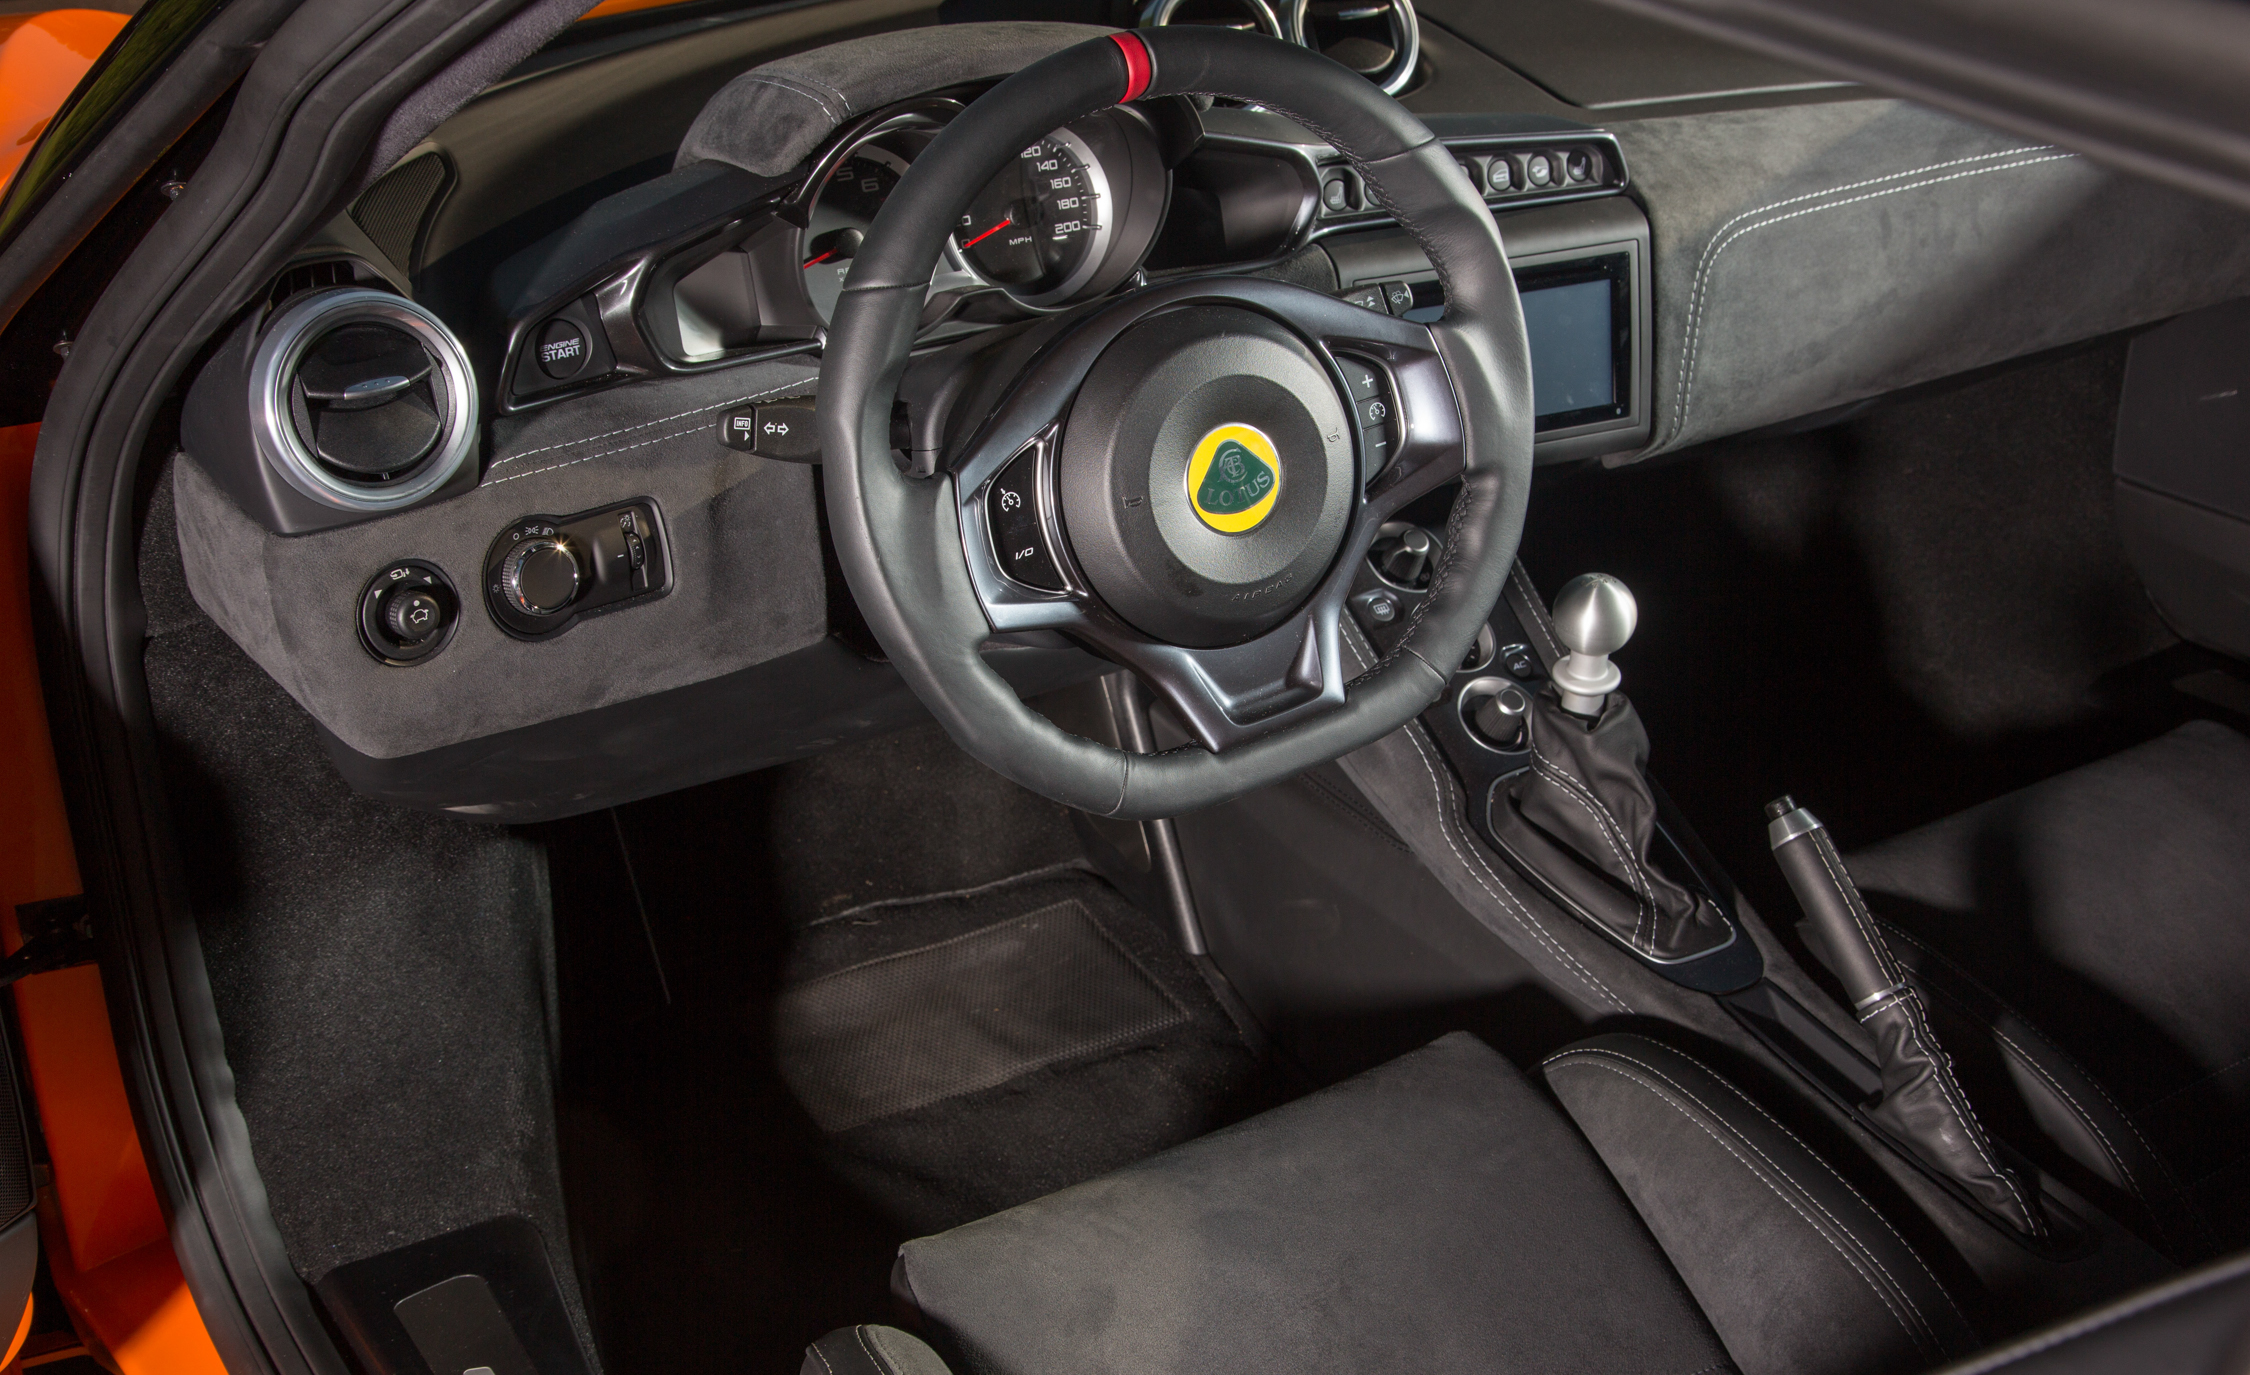 2017 Lotus Evora 400 Interior Dashboard (View 1 of 12)